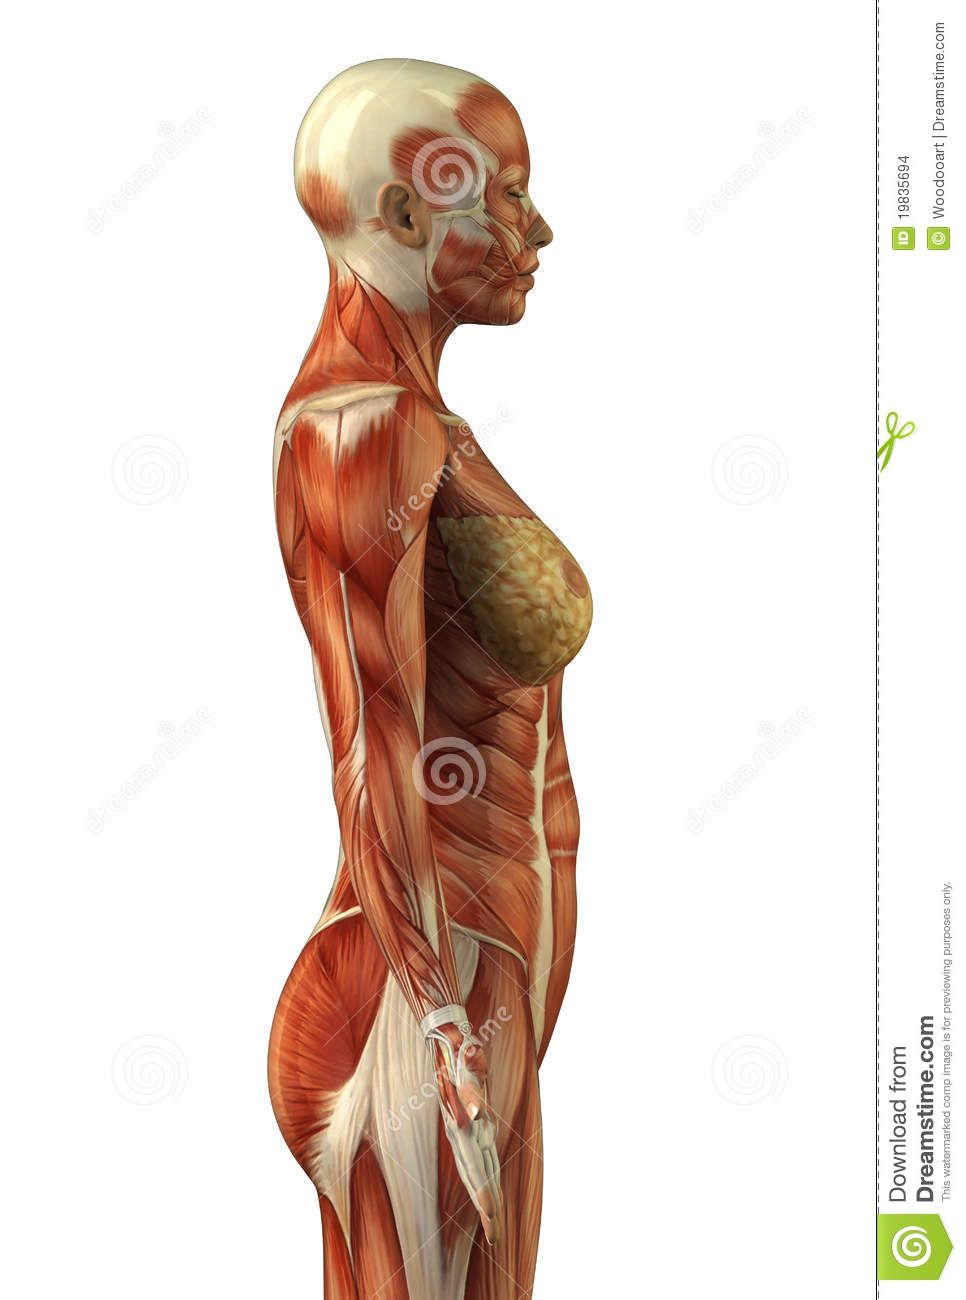 Female Back Muscle Anatomy Torso anatomy female | Anatomy ...